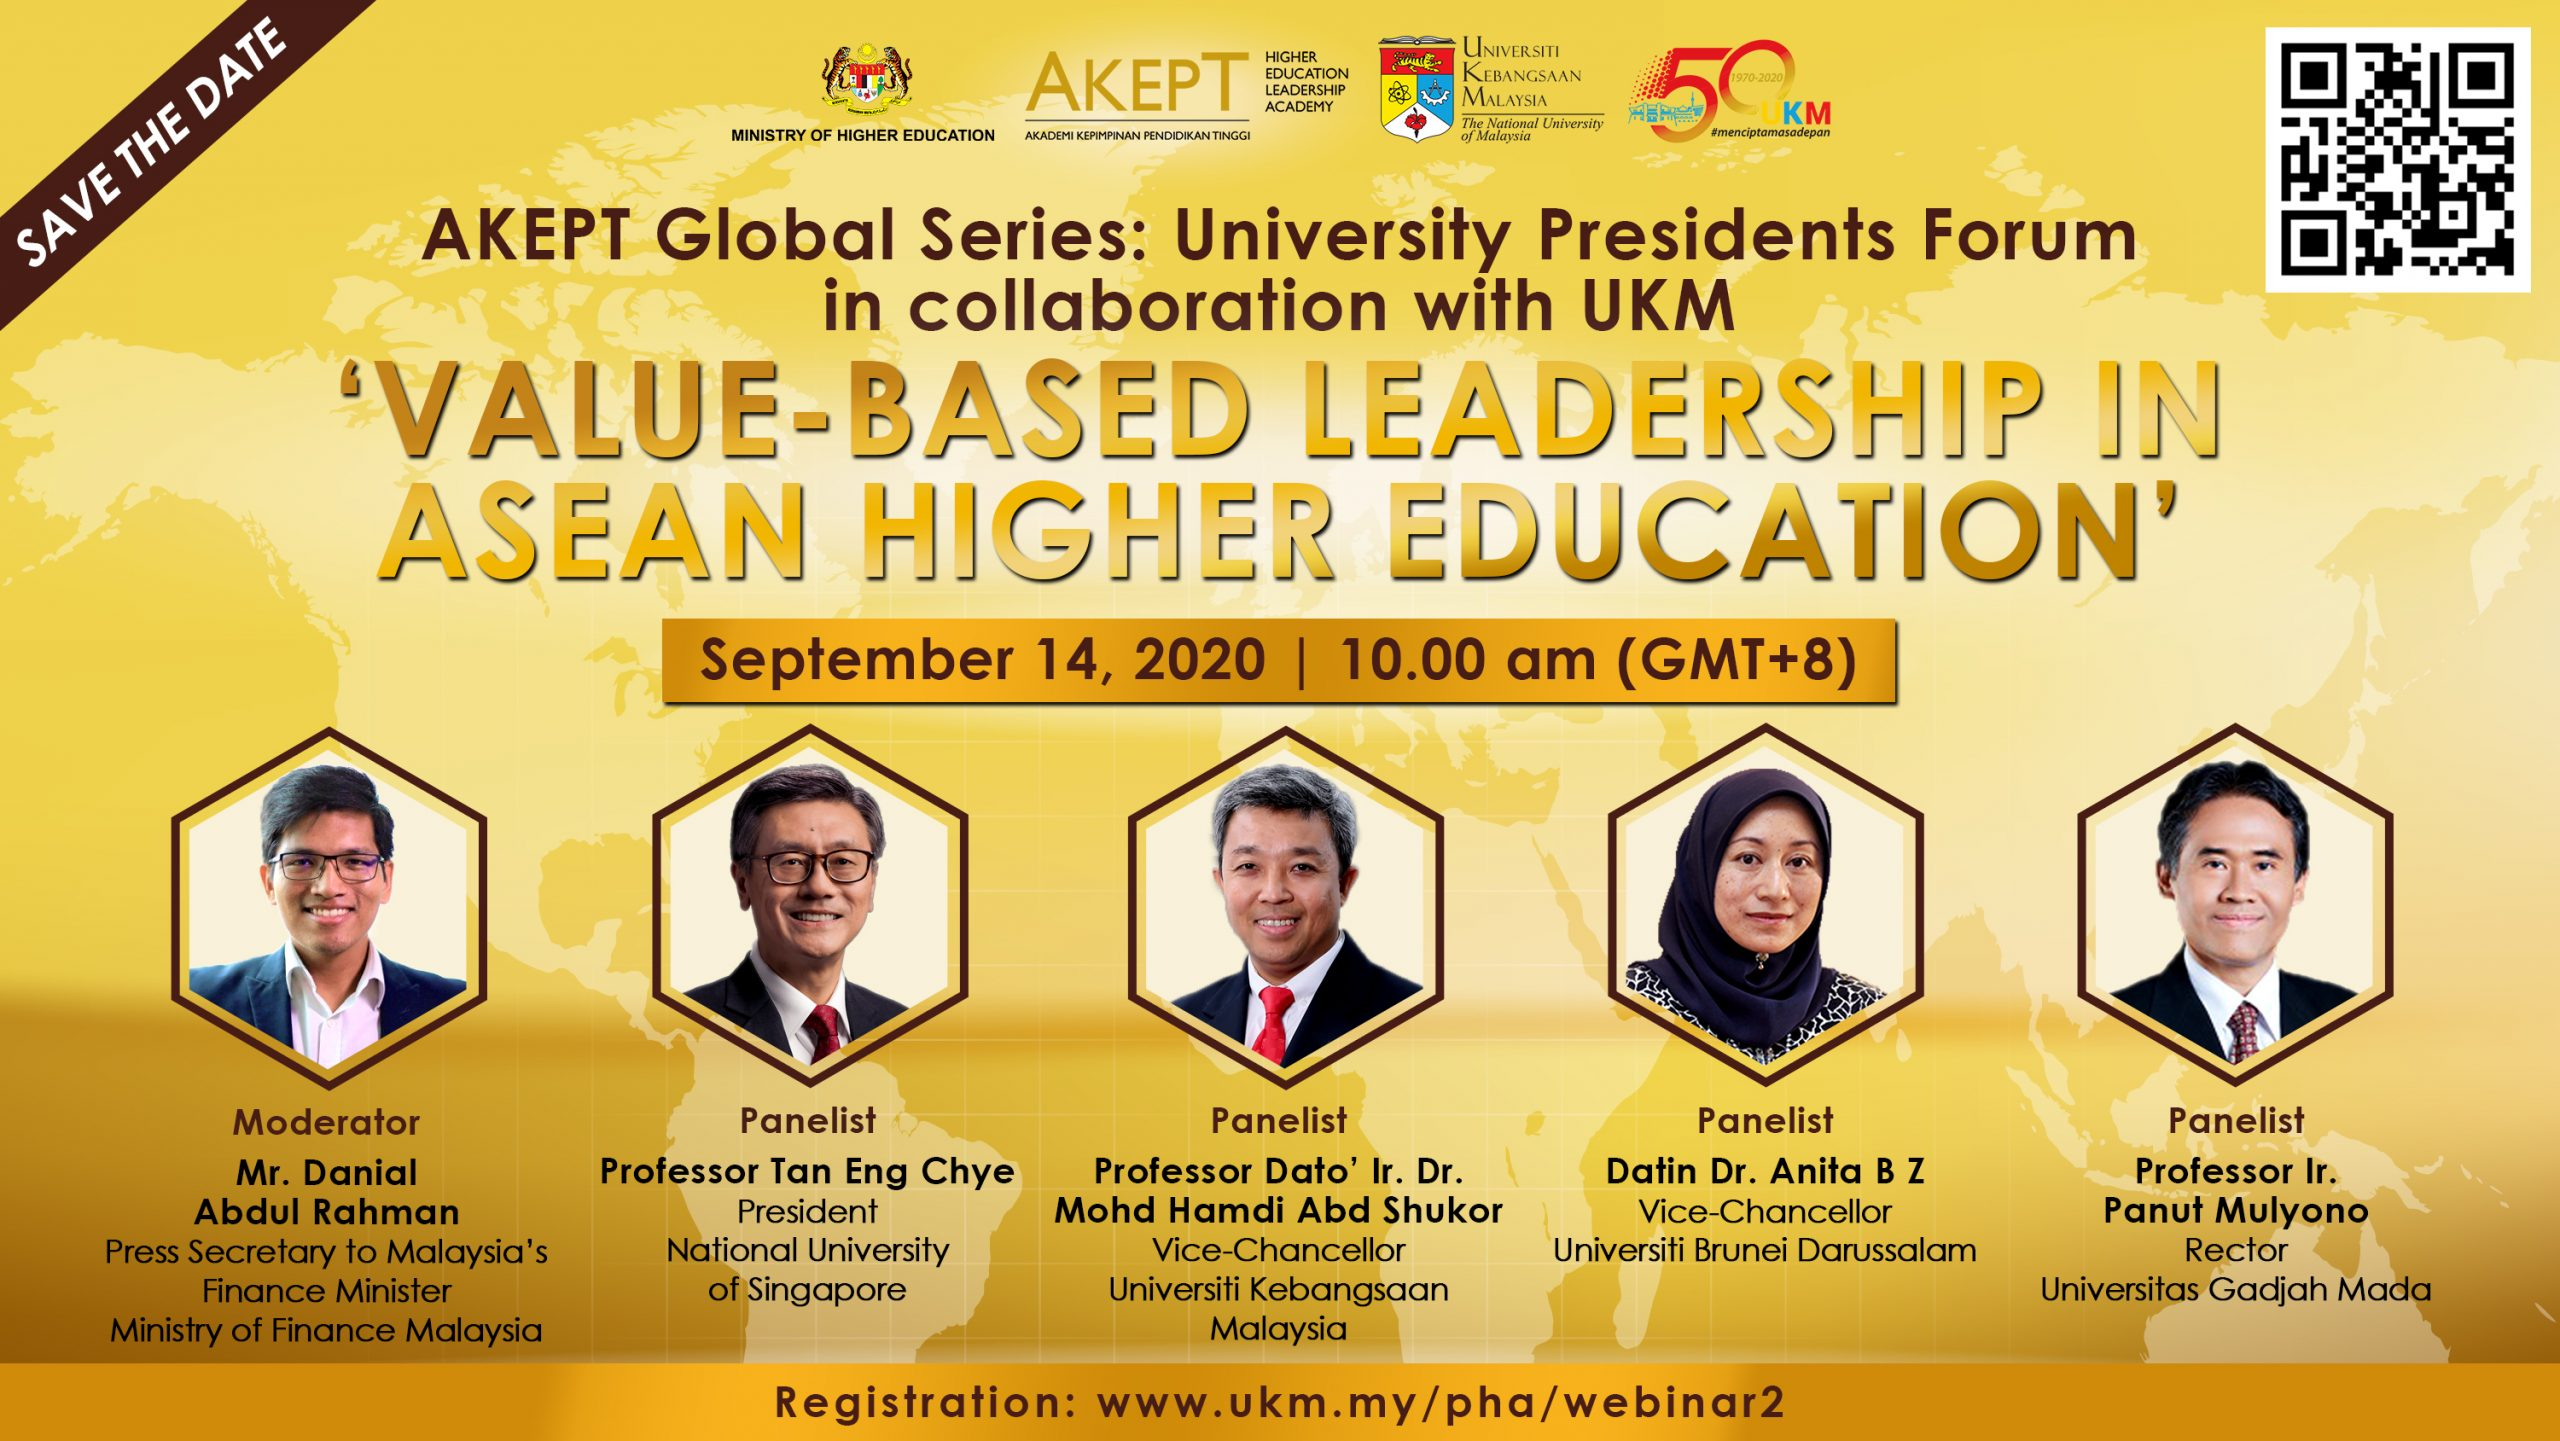 Invitation to AKEPT Global Series in Collaboration with UKM Webinar 2